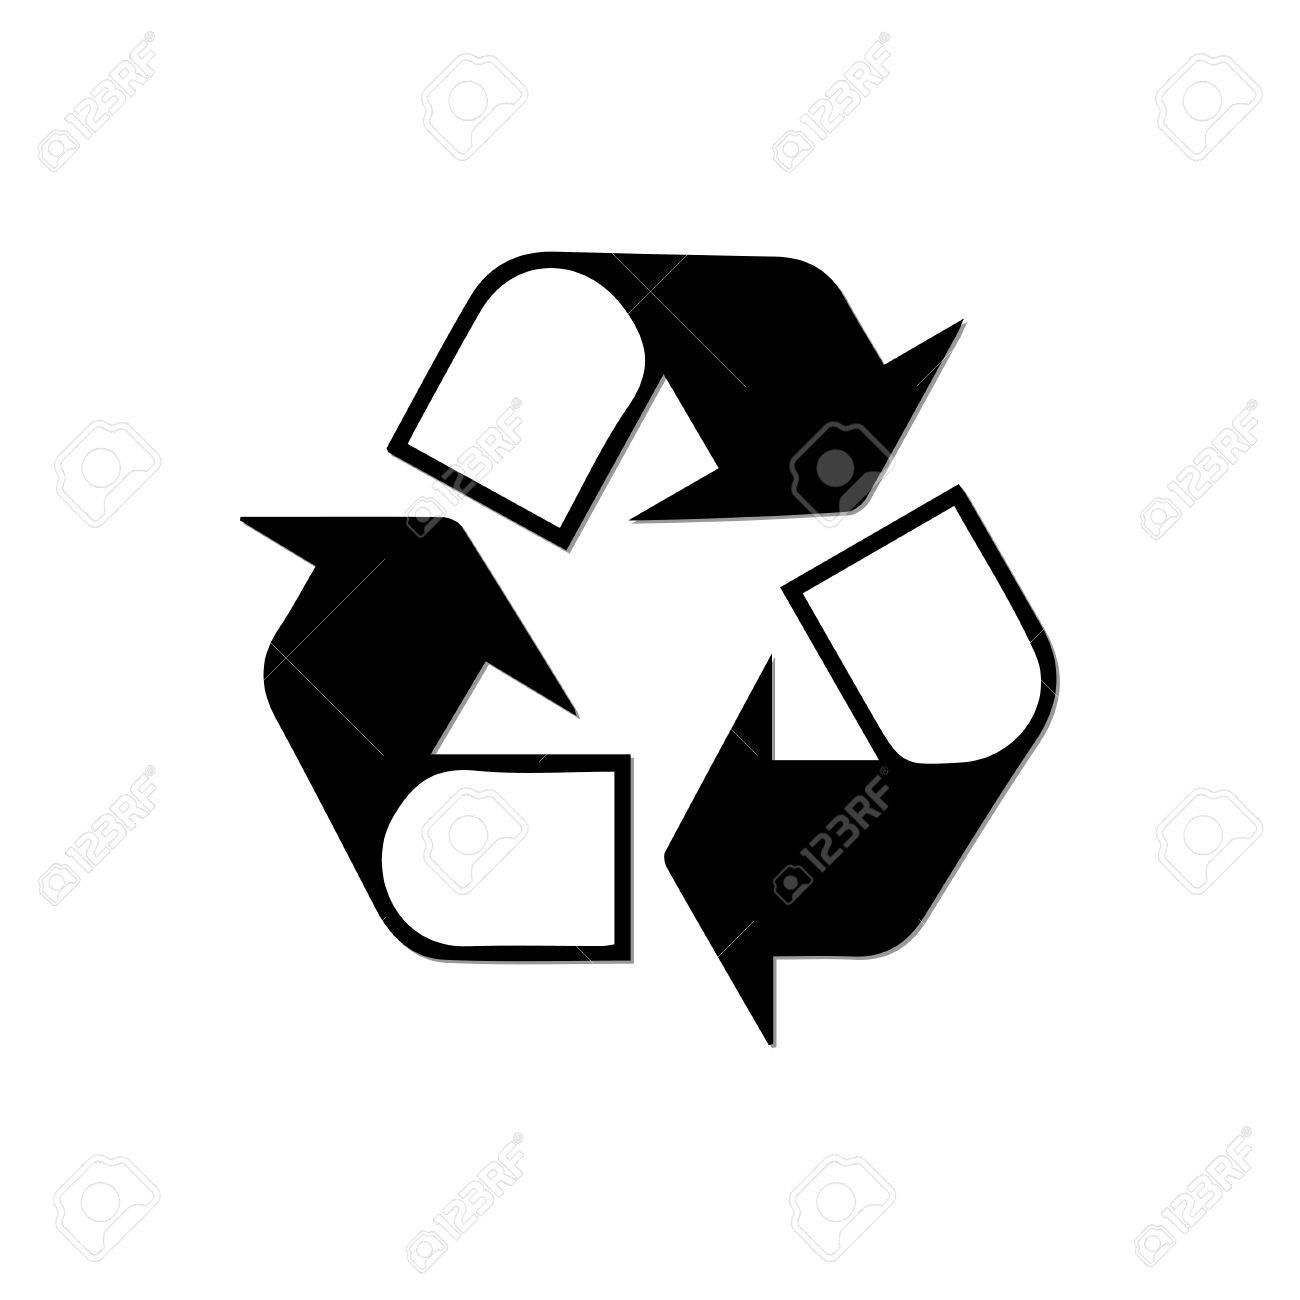 recycle logo royalty free cliparts vectors and stock illustration rh 123rf com recycle logo vector ai vector recycle symbol free download